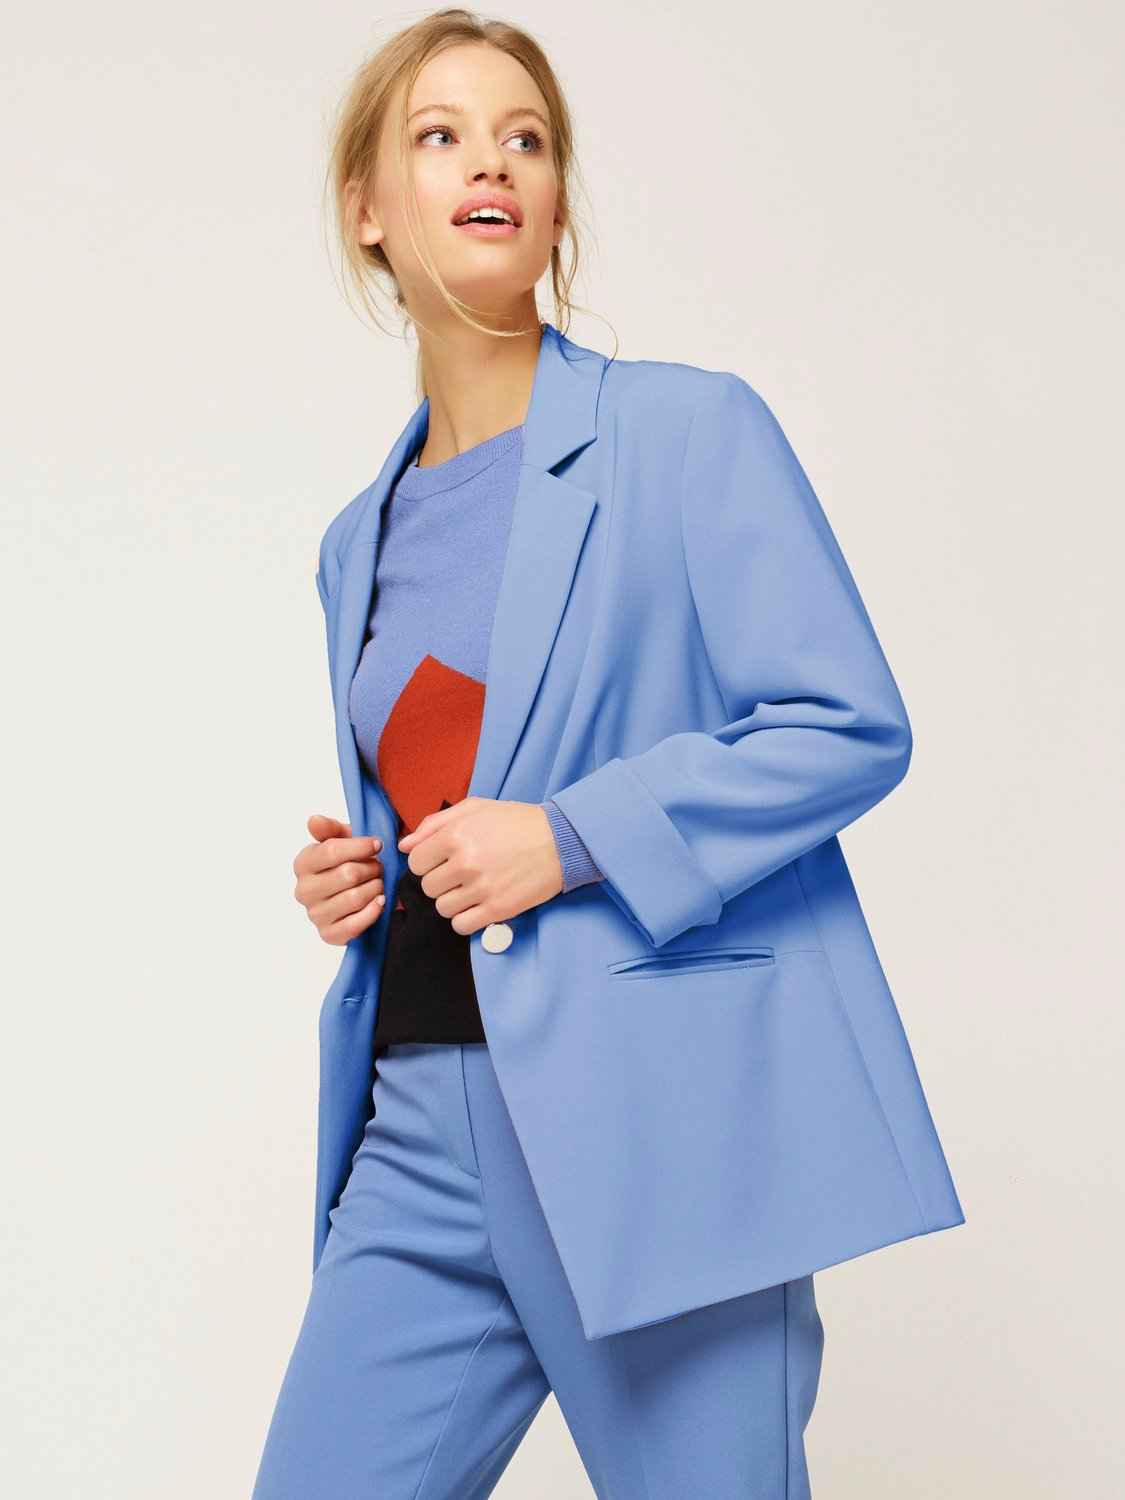 Women's Outerwear Women's Ladies coloured blazer jacket